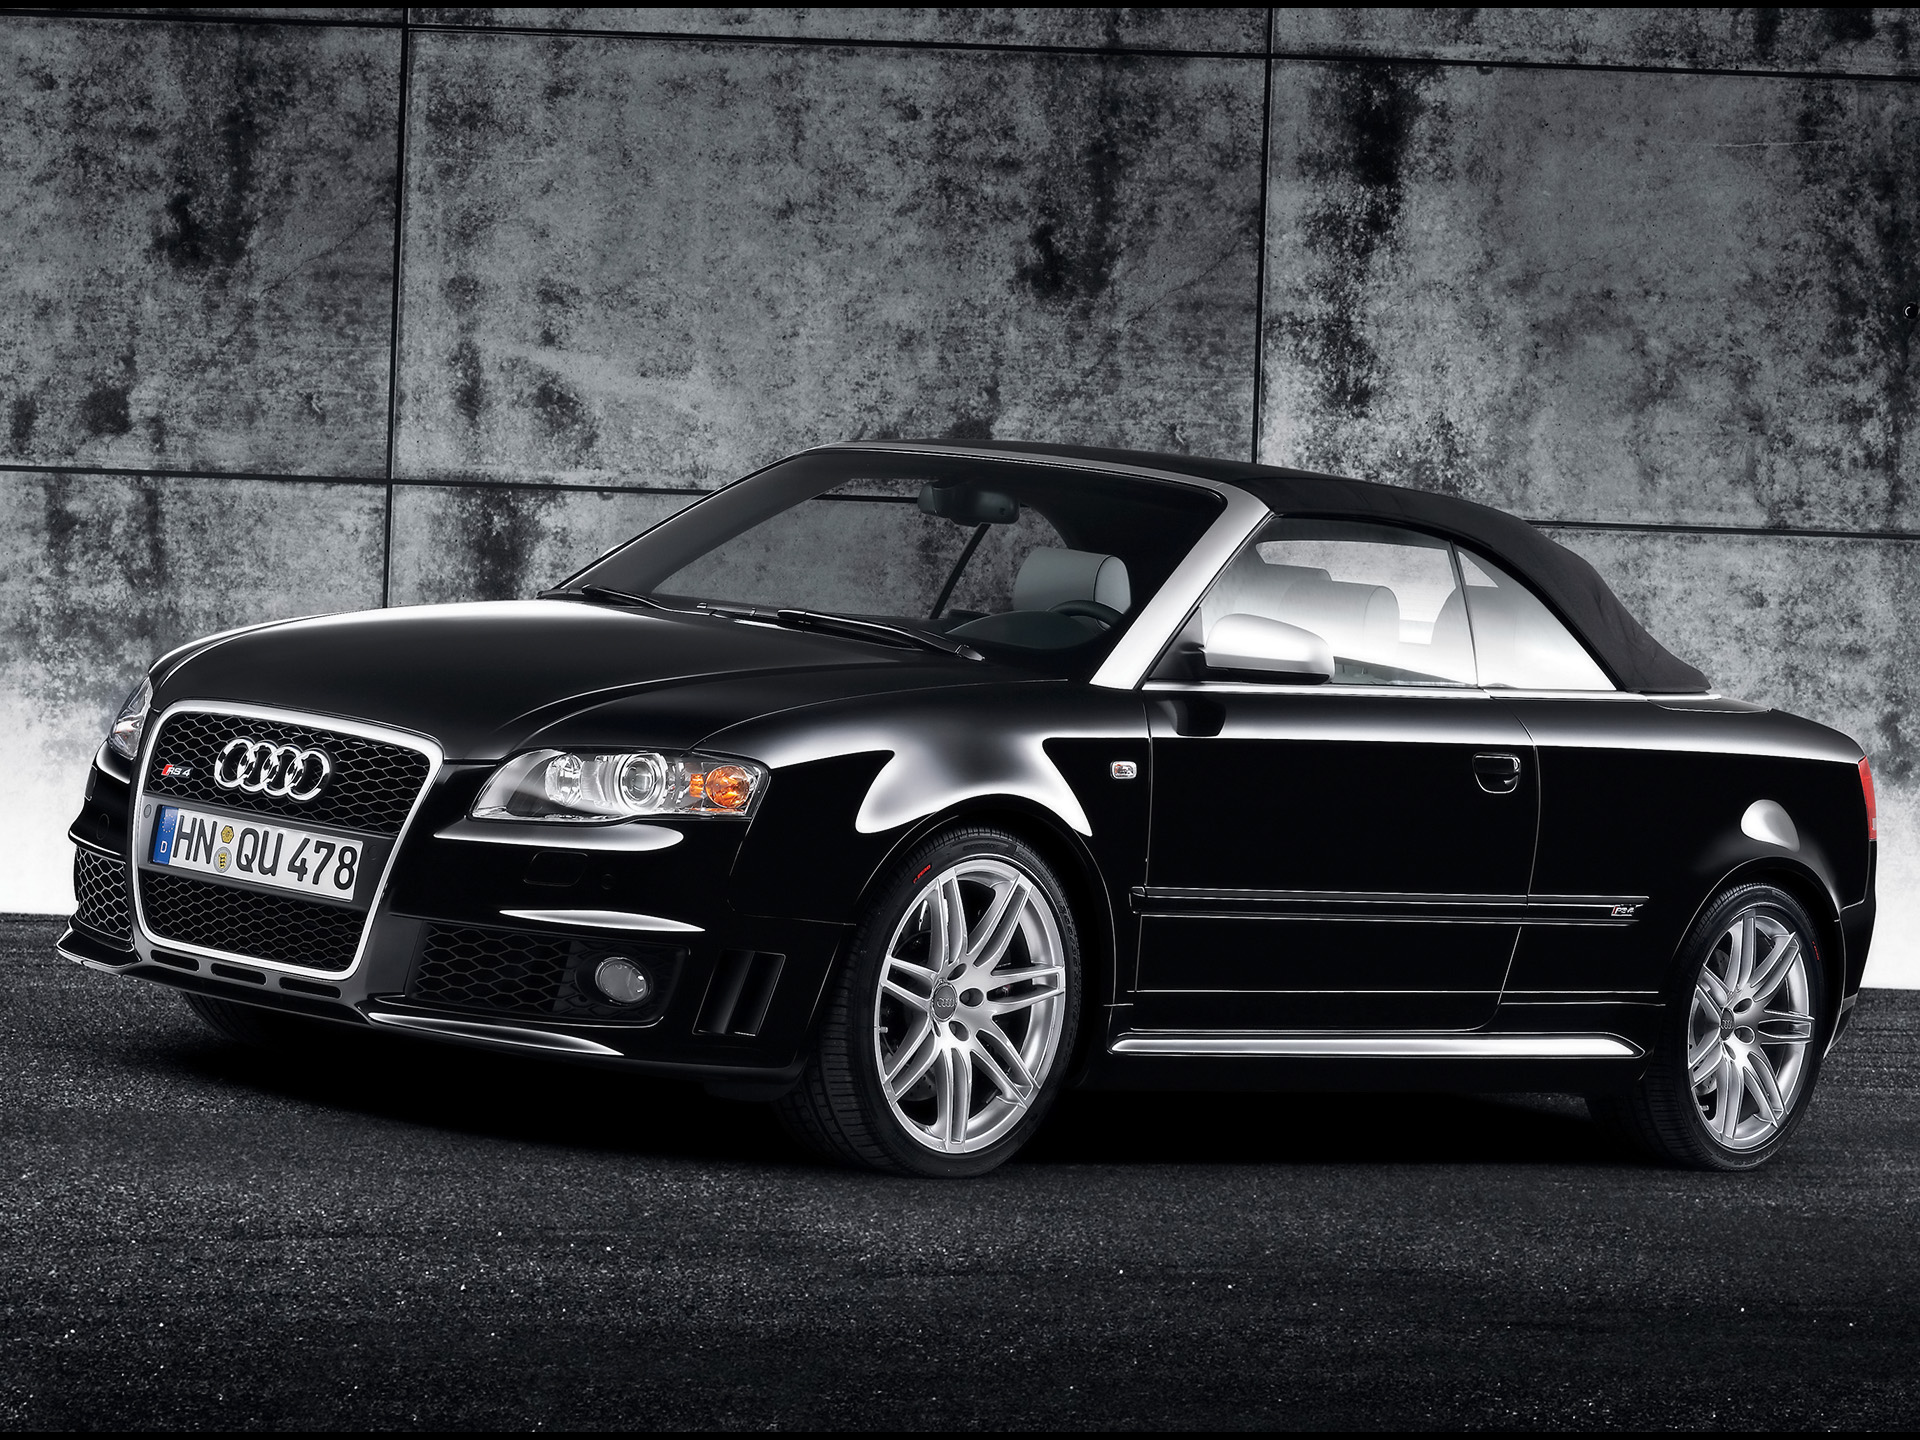 2008 Audi S4 News and Information | conceptcarz.com